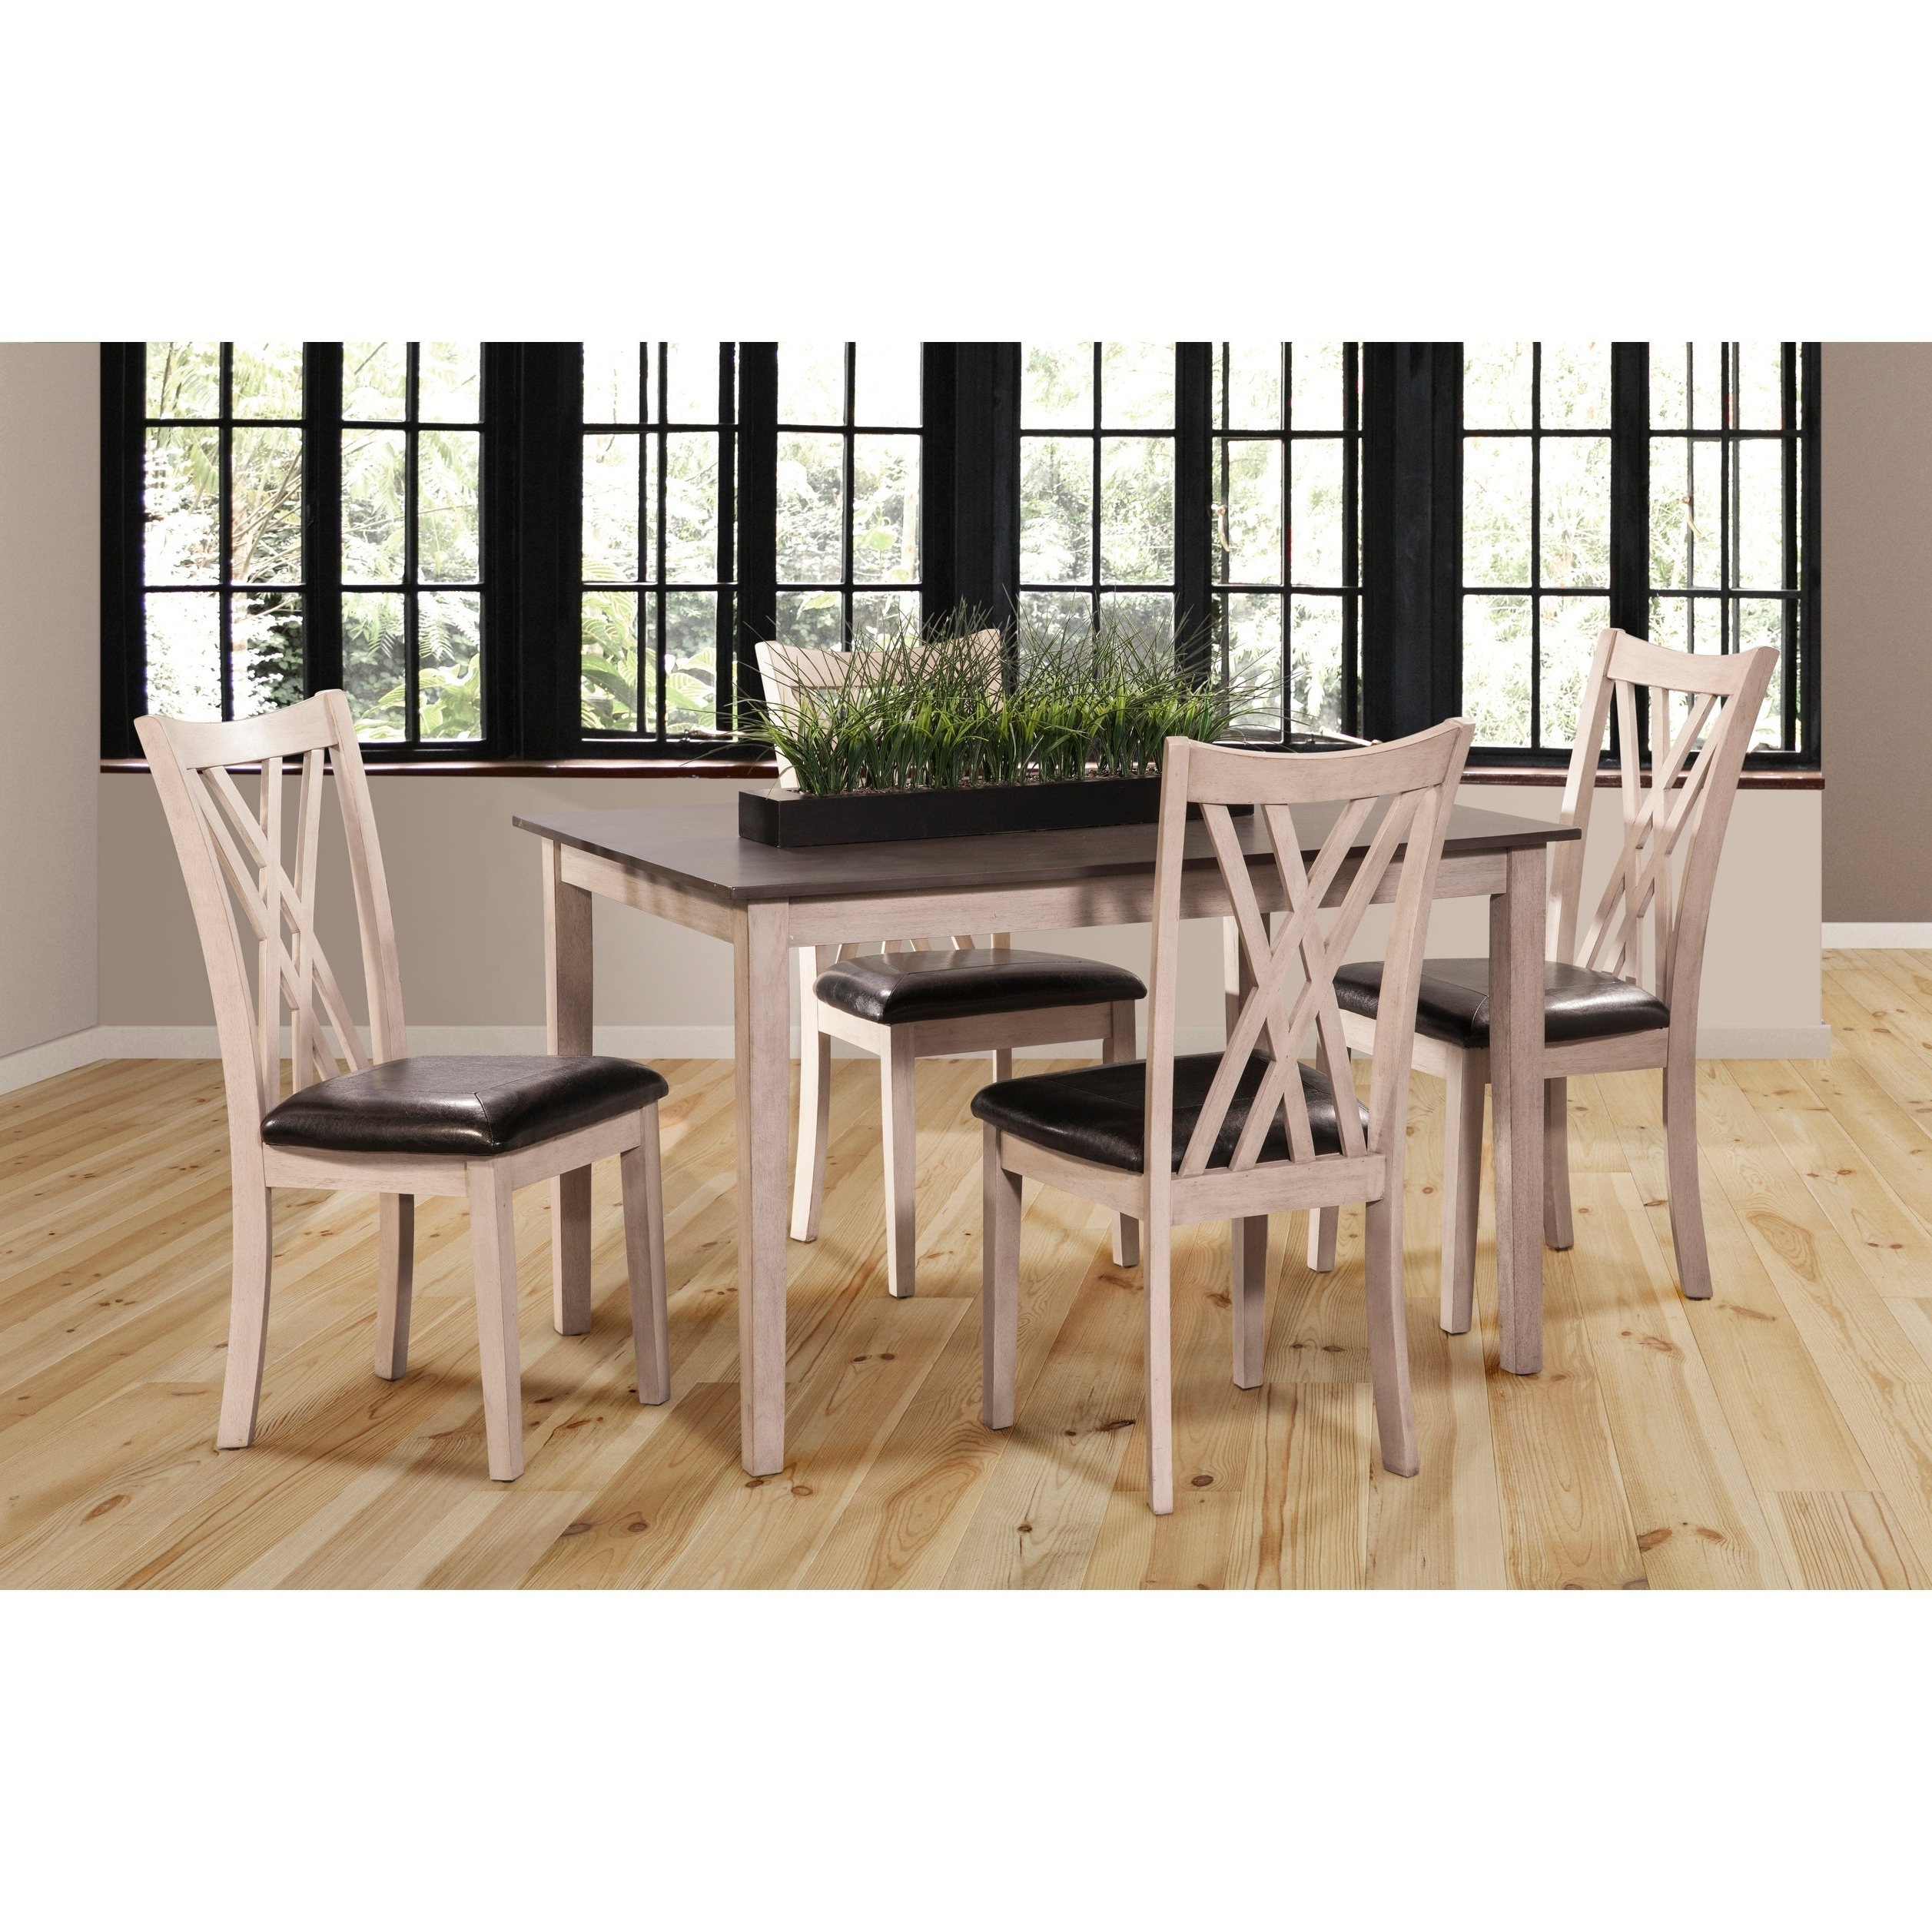 Famous Bryson 5 Piece Dining Sets Intended For Paige Creme And Brown 5 Piece Dining Table Set (View 15 of 20)